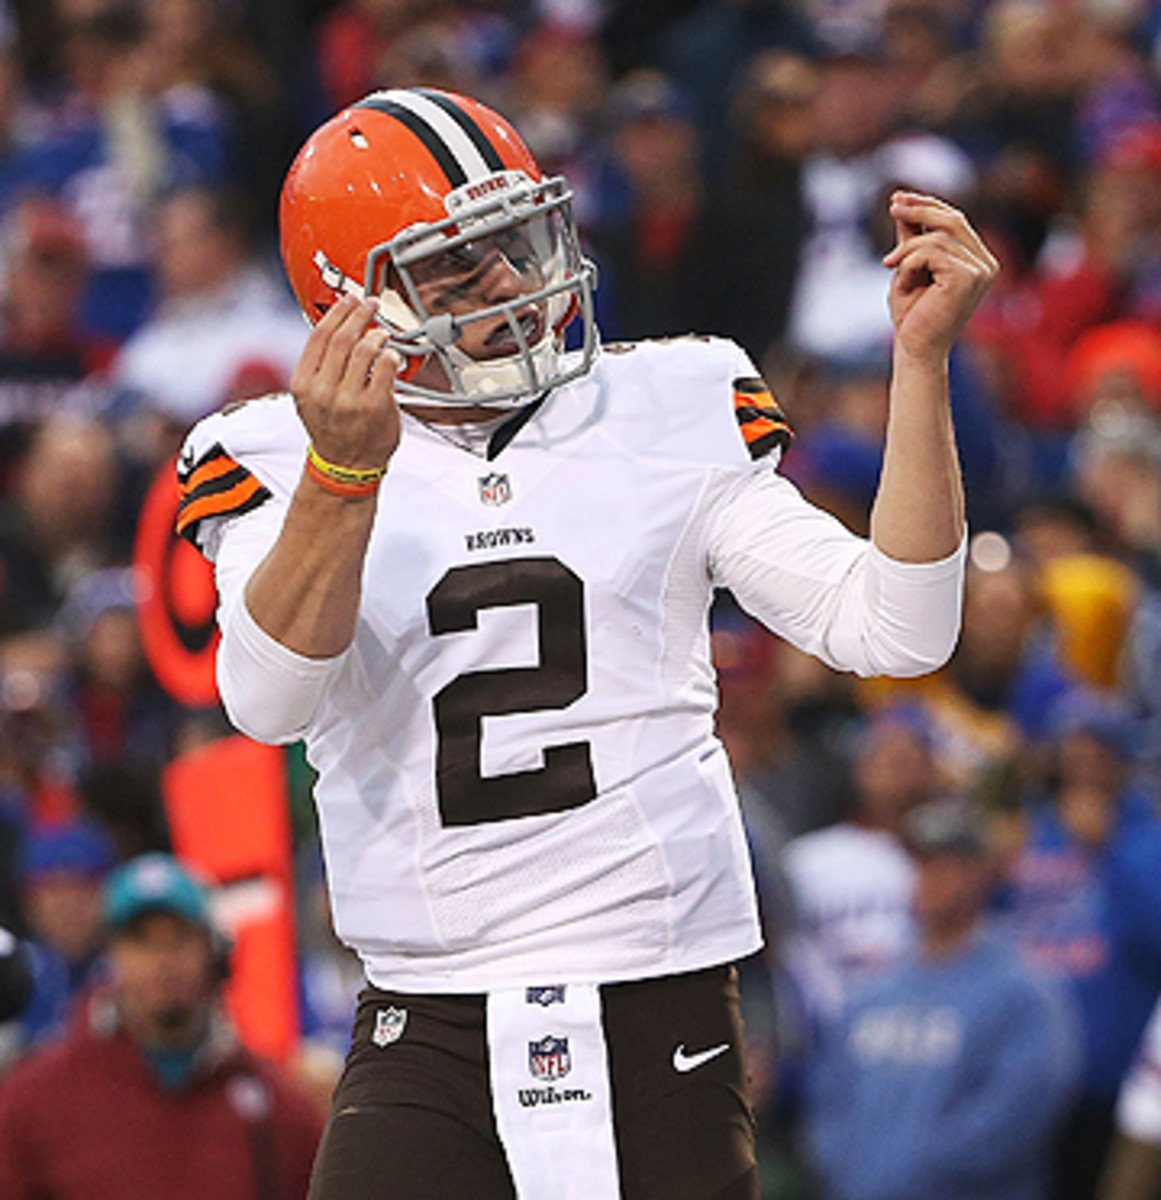 Entering the game in the fourth quarter, Manziel led an 80-yard TD drive. (Tom Szczerbowski/Getty Images)